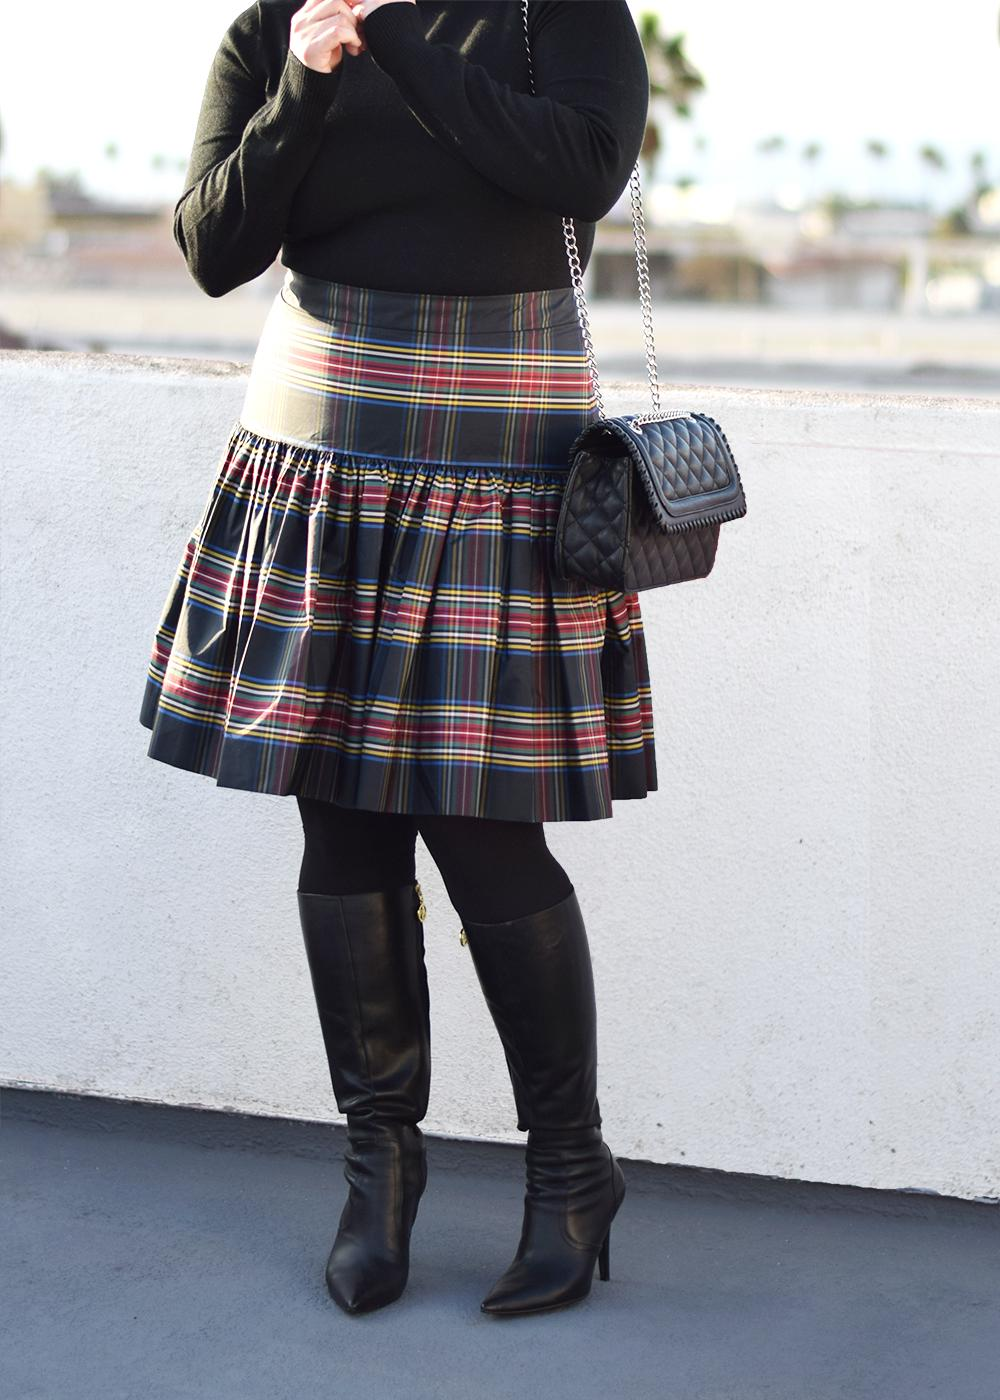 turtleneck-outfit-barefoot-in-la-fashion-blog-j-crew-plaid-skirt-0669